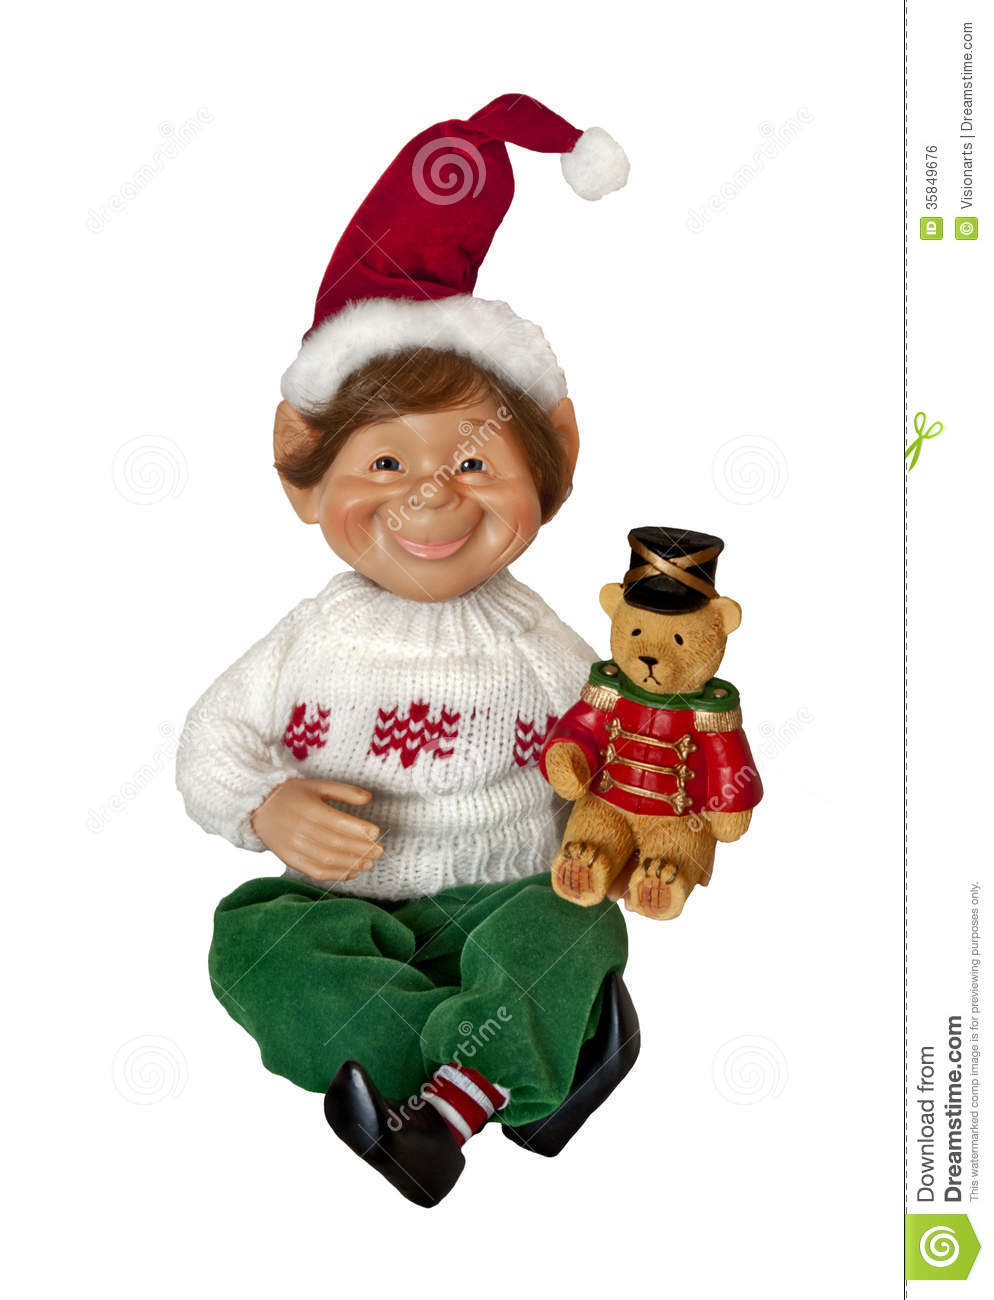 Christmas Elf With Toy Teddy Bear Royalty Free Stock Image - Image ...